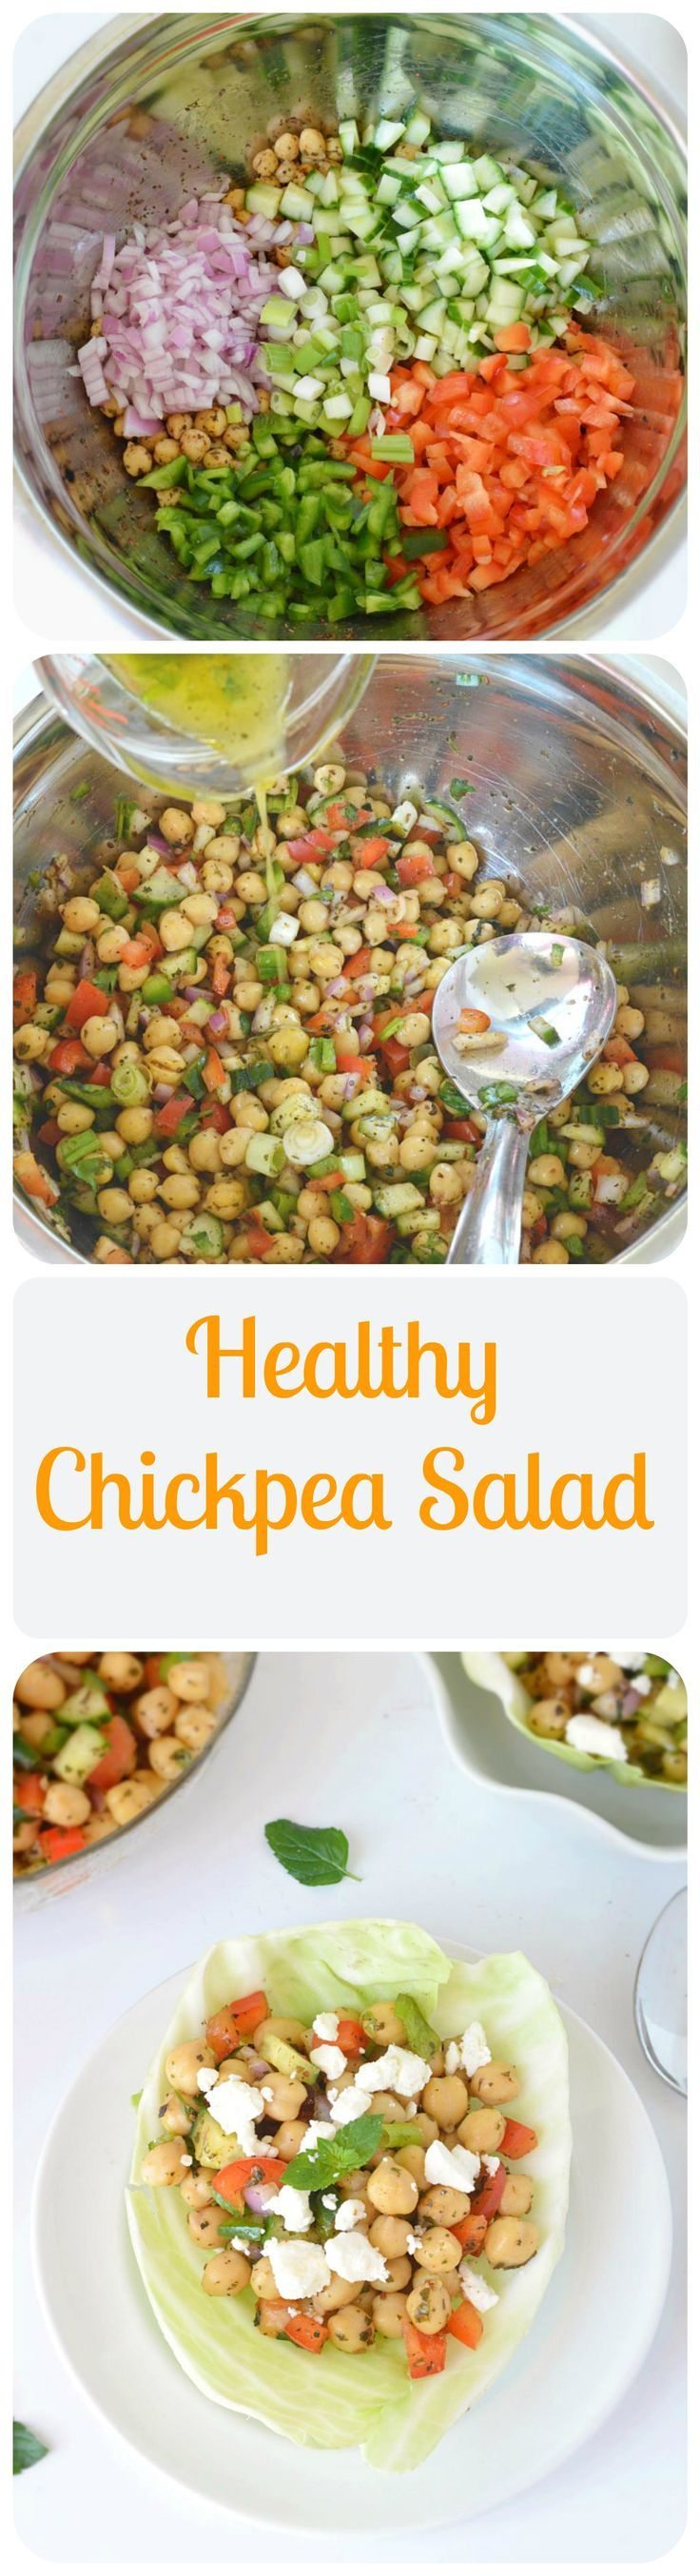 Healthy and refreshing chickpeas salad prepared with fresh veggies and tossed in…